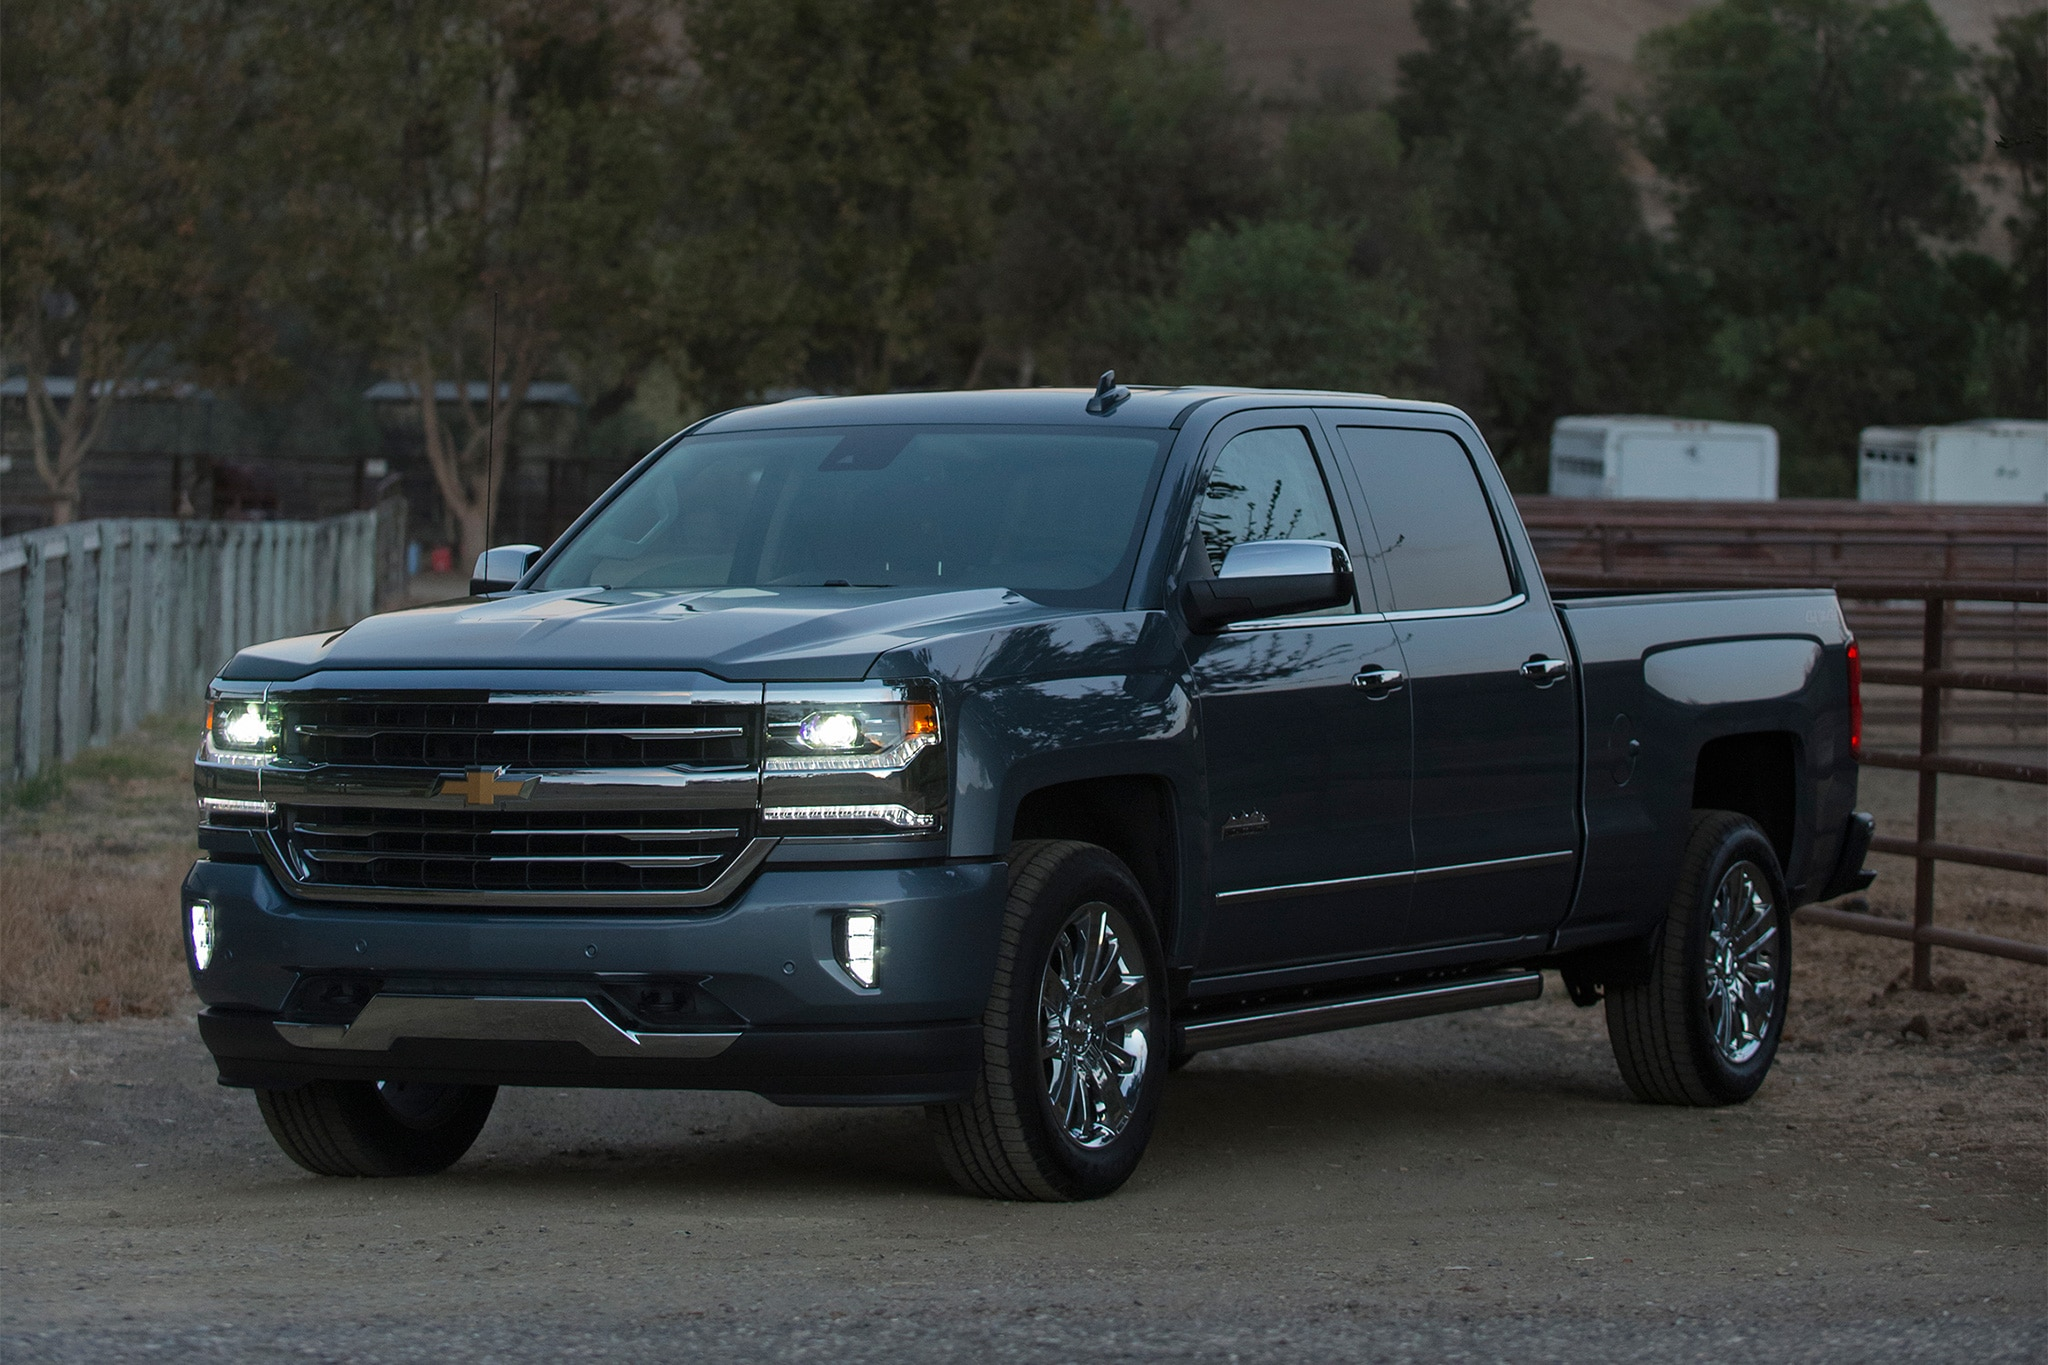 2016 chevrolet silverado rally edition debuts in texas. Black Bedroom Furniture Sets. Home Design Ideas